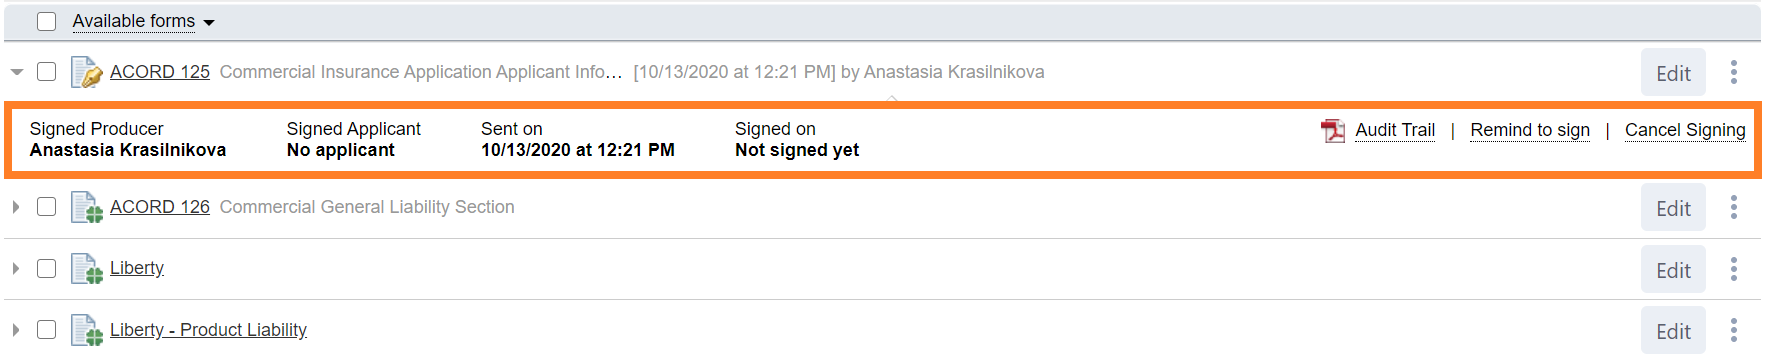 signed forms interface